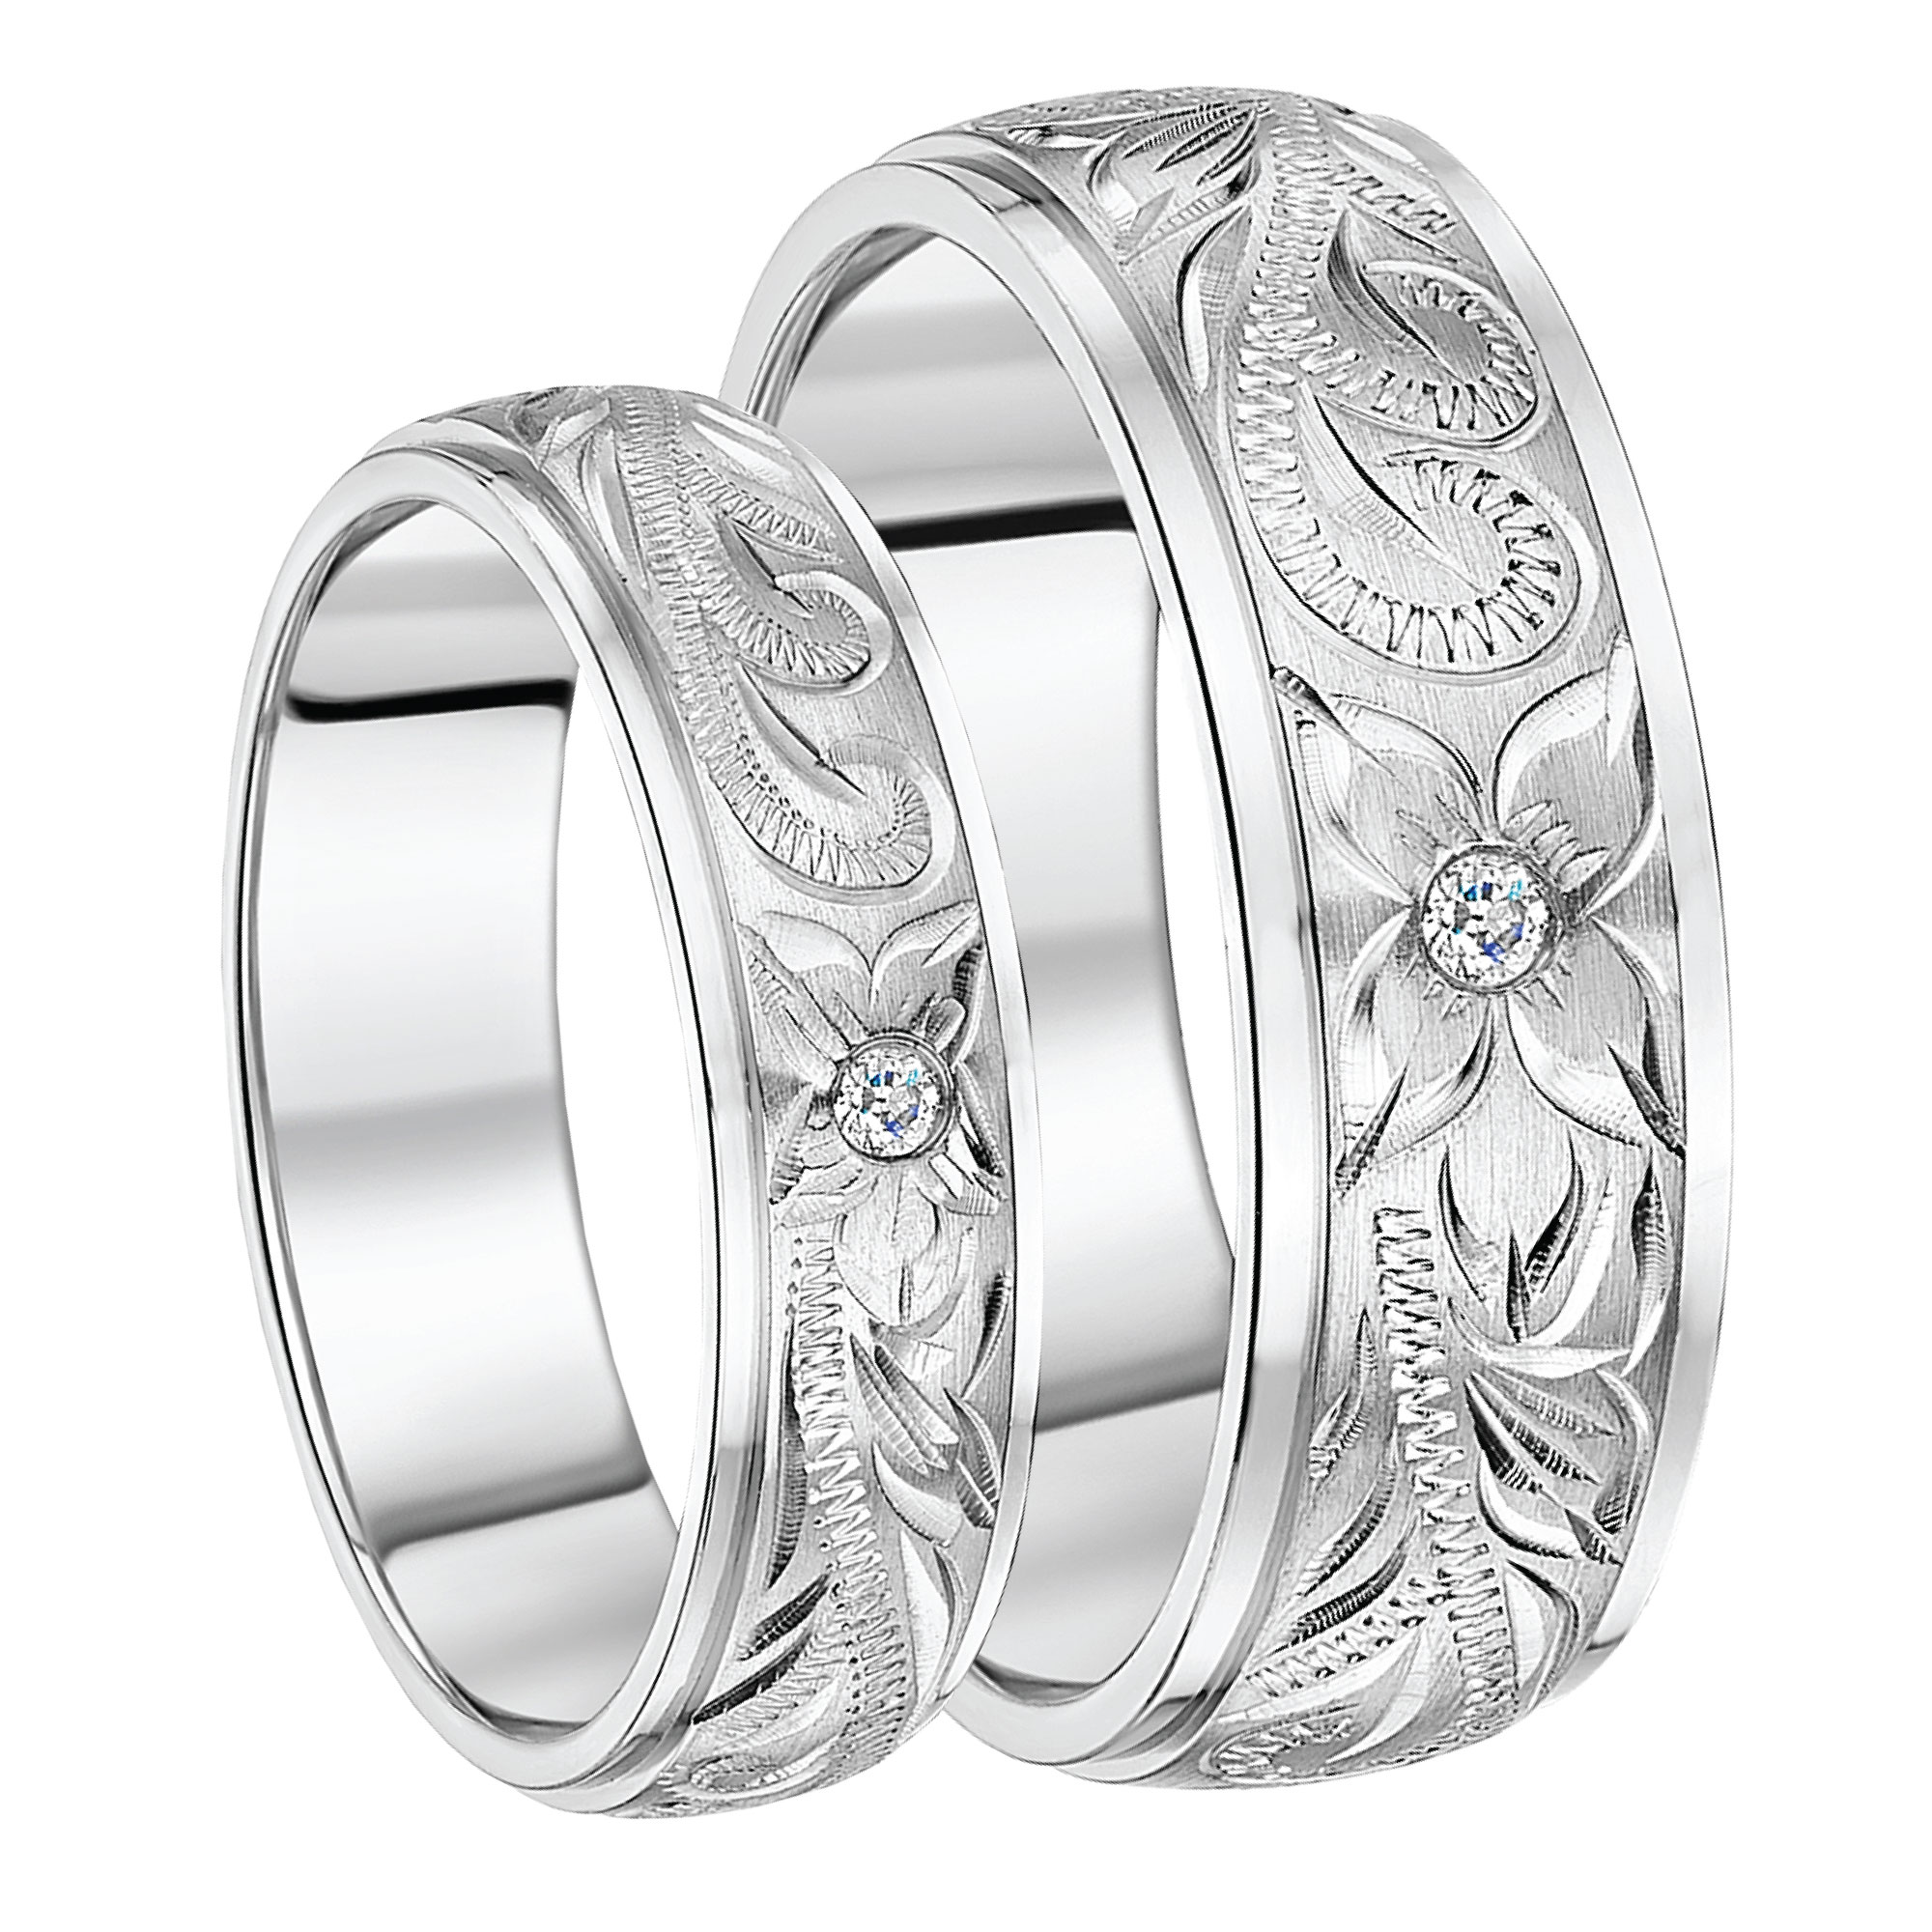 wedding kara collection from detailed cut rings engagement pin classic ring stella the kirk engraved princess hand